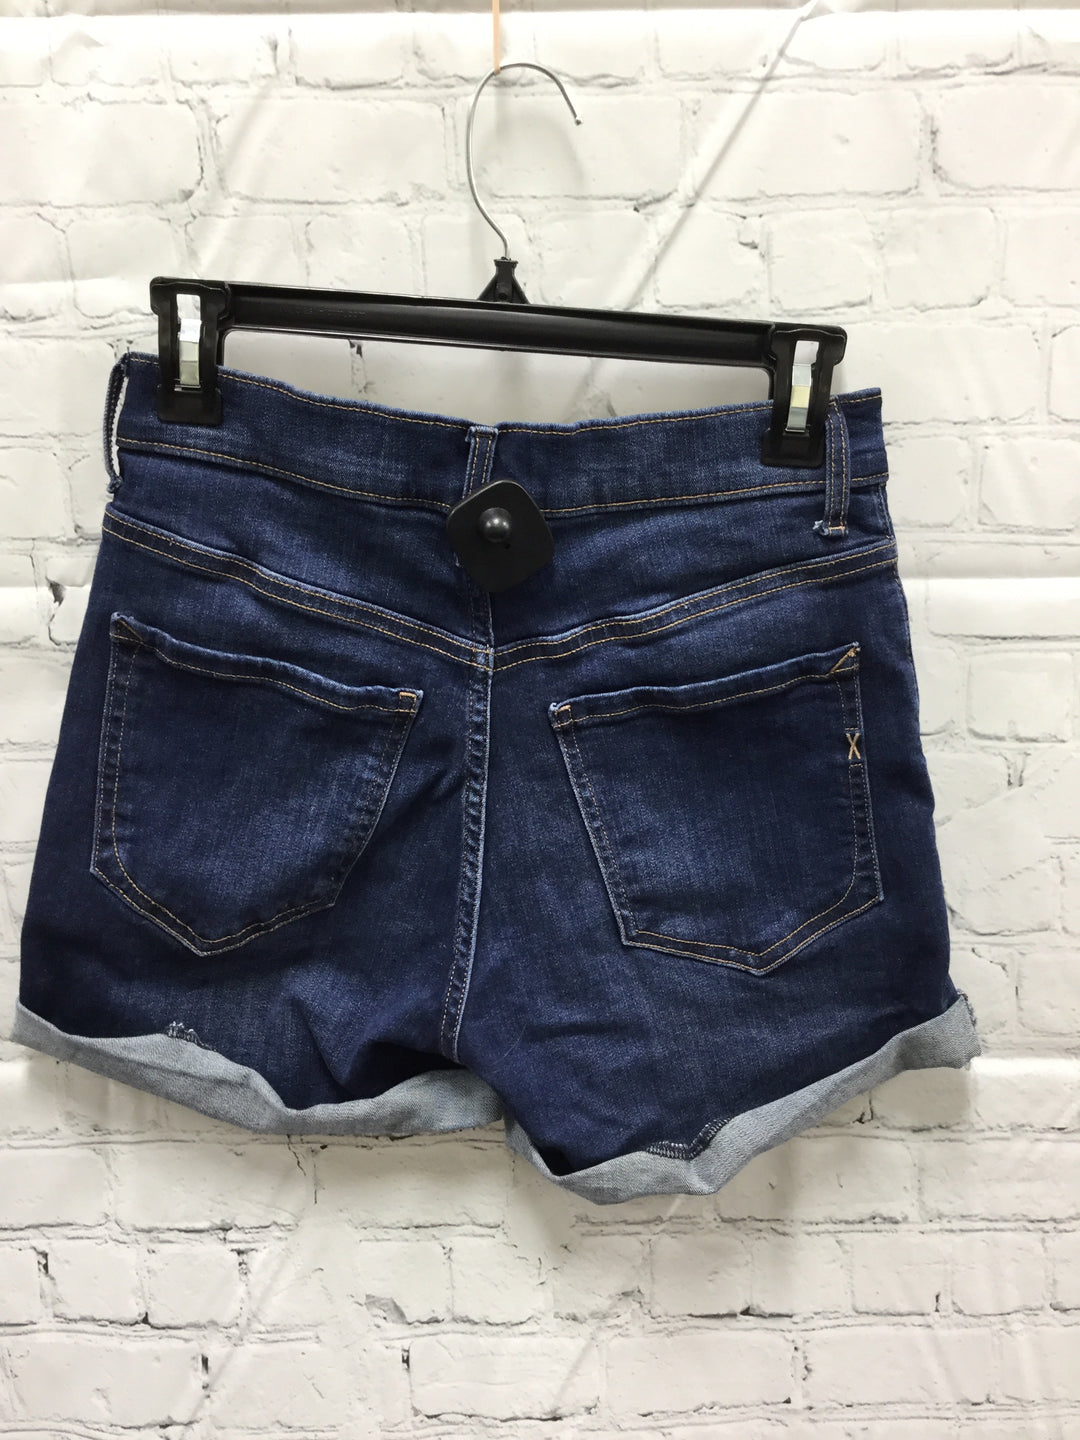 Photo #1 - BRAND: EXPRESS , STYLE: SHORTS , COLOR: DENIM , SIZE: 0 , SKU: 127-4954-4758